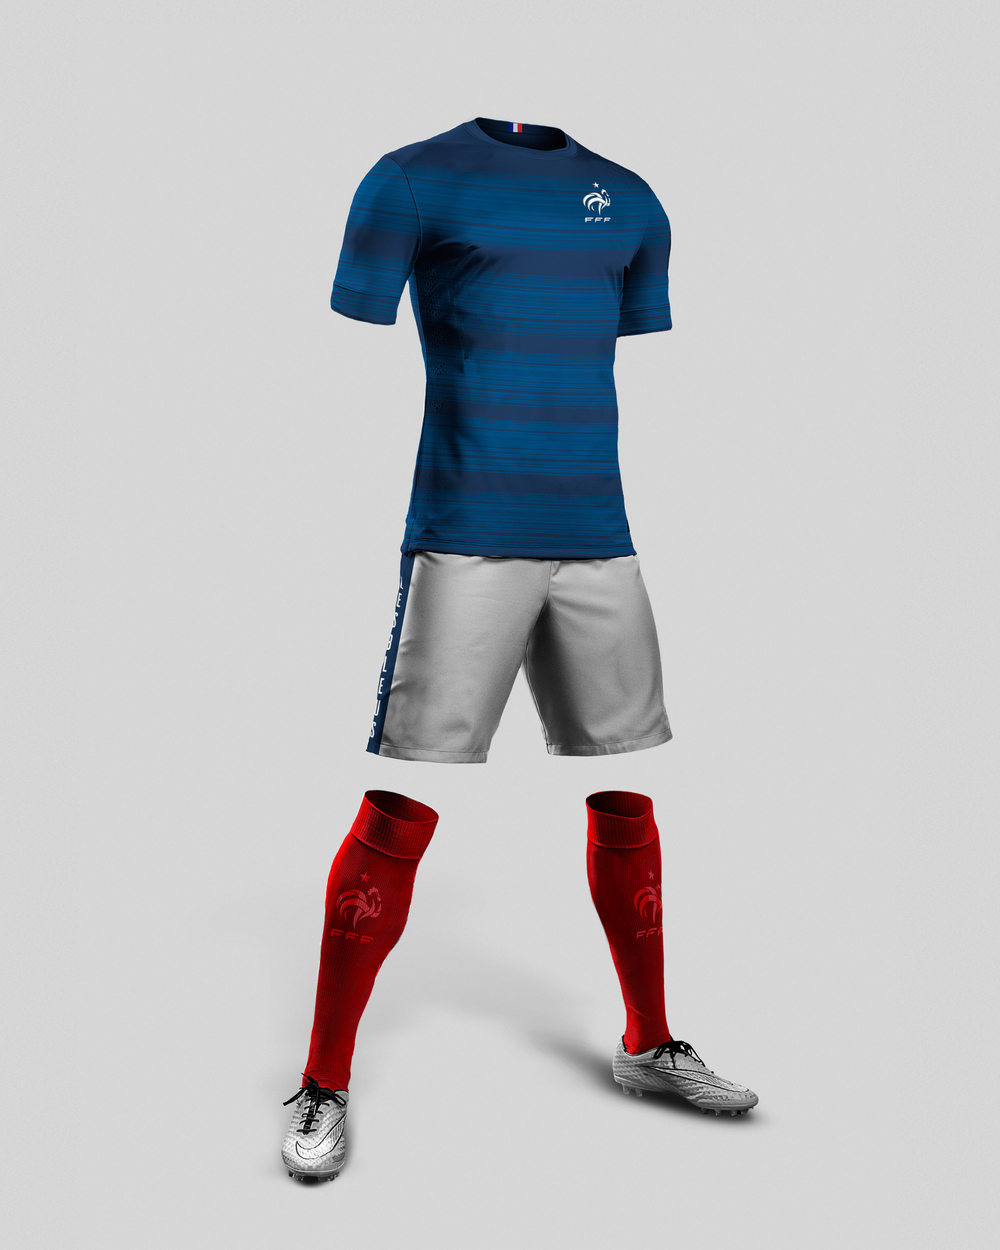 "A combination of blue tones, made from brush strokes, adorn the shirt  in order to encapsulate France's rich history as the art center of Europe, while also referencing the speed that the French team is known for playing. The shorts are white with accenting side stripes that feature the French National Team's nickname, ""Les Bleus"". Rounding out the uniforms, are a bold finish that cites Frances tri-color flag, red socks. Small touches of national pride are placed through out the jersey, from the French crest on the front of the uniform and socks, to a small tri-color flag placed inside the collar."